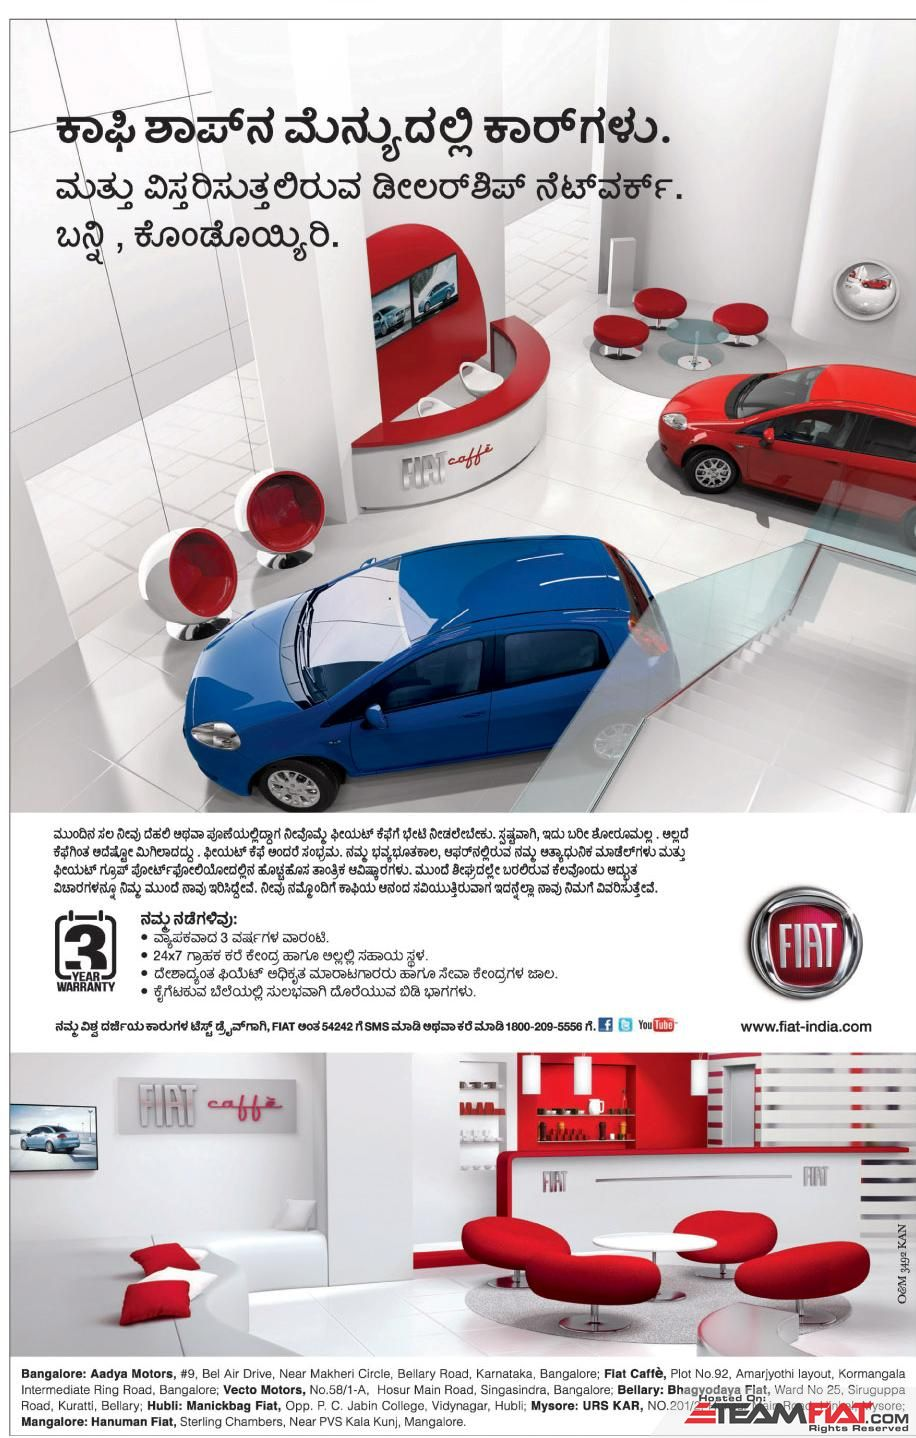 44606d1366343270-fiat-marketing-campaigns-advertisements-sales-promotions-caffe_ad.jpg